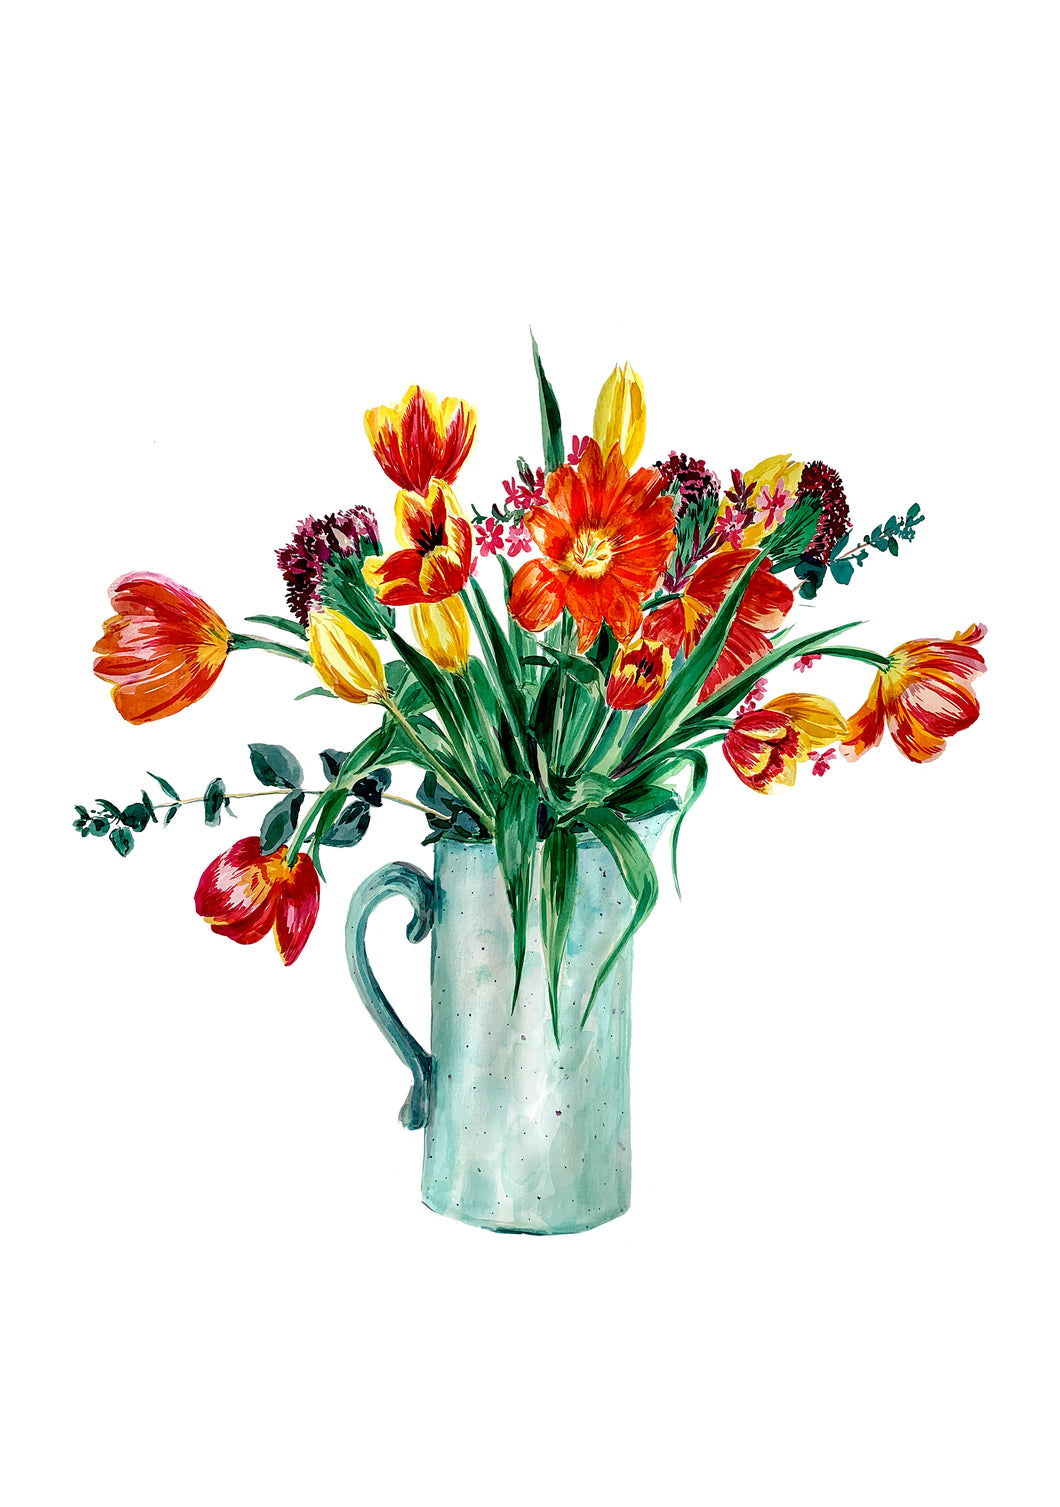 Tulips To Make You Smile Giclée Print